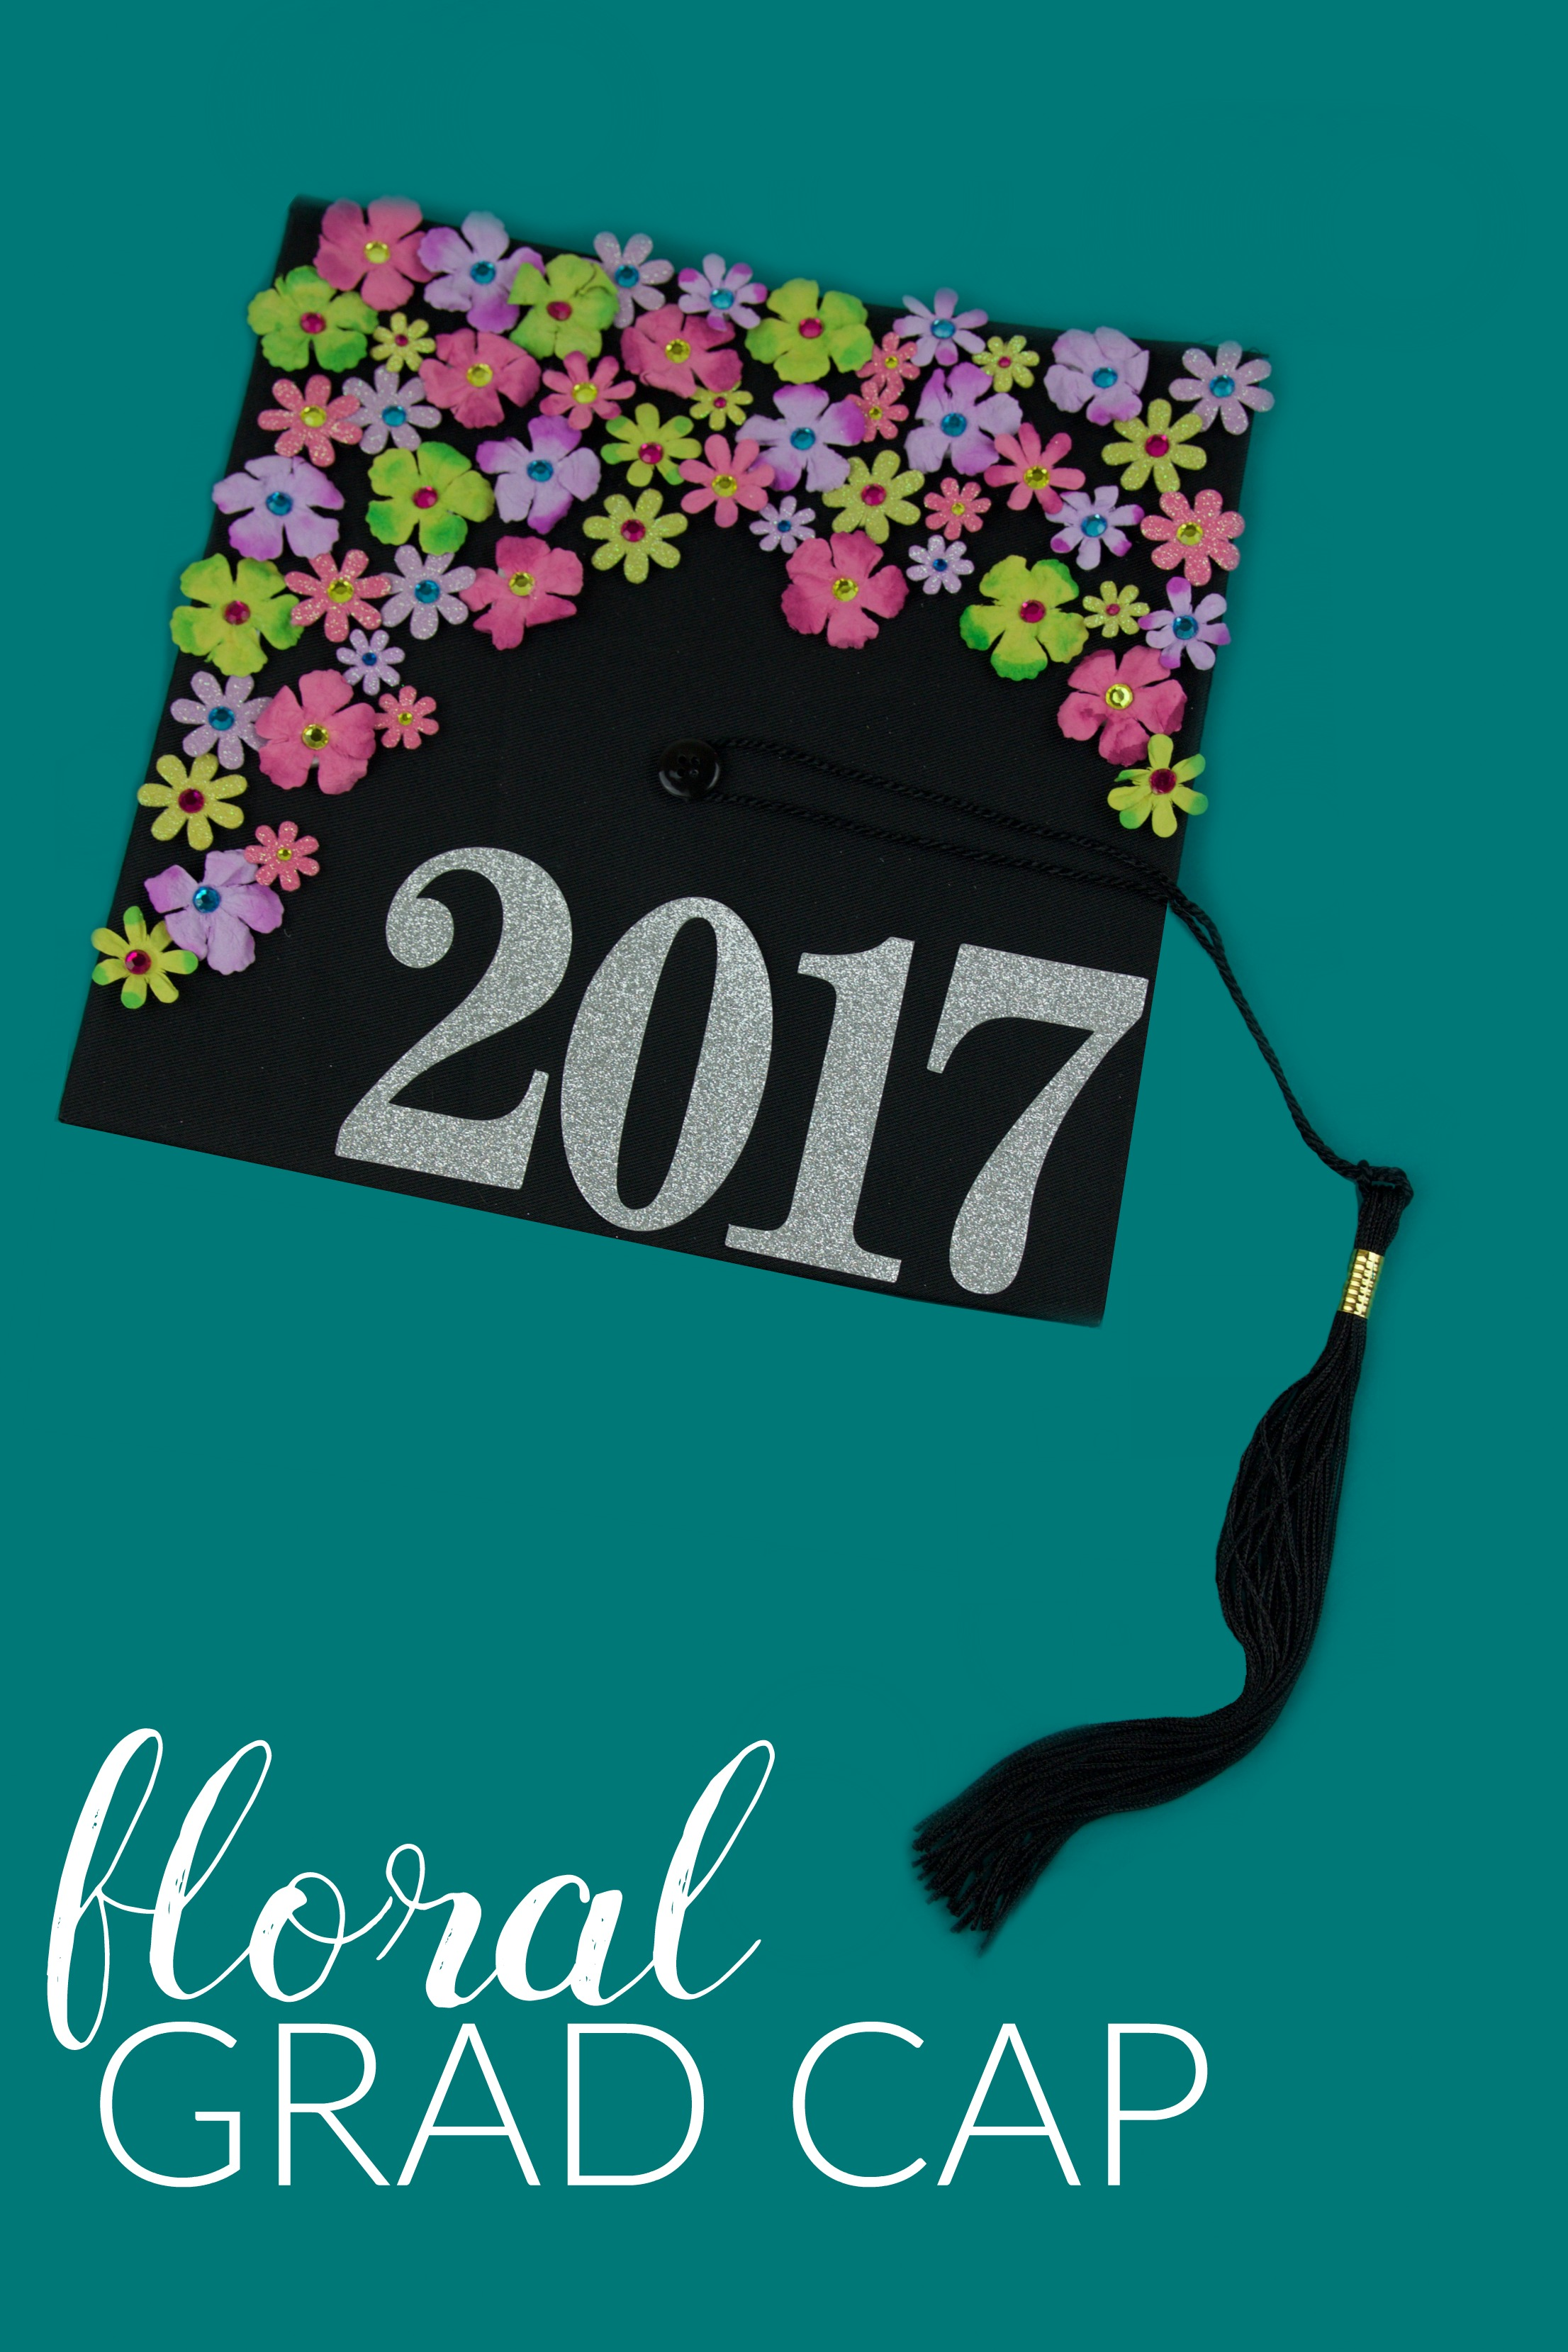 diy_floral_graduation_cap